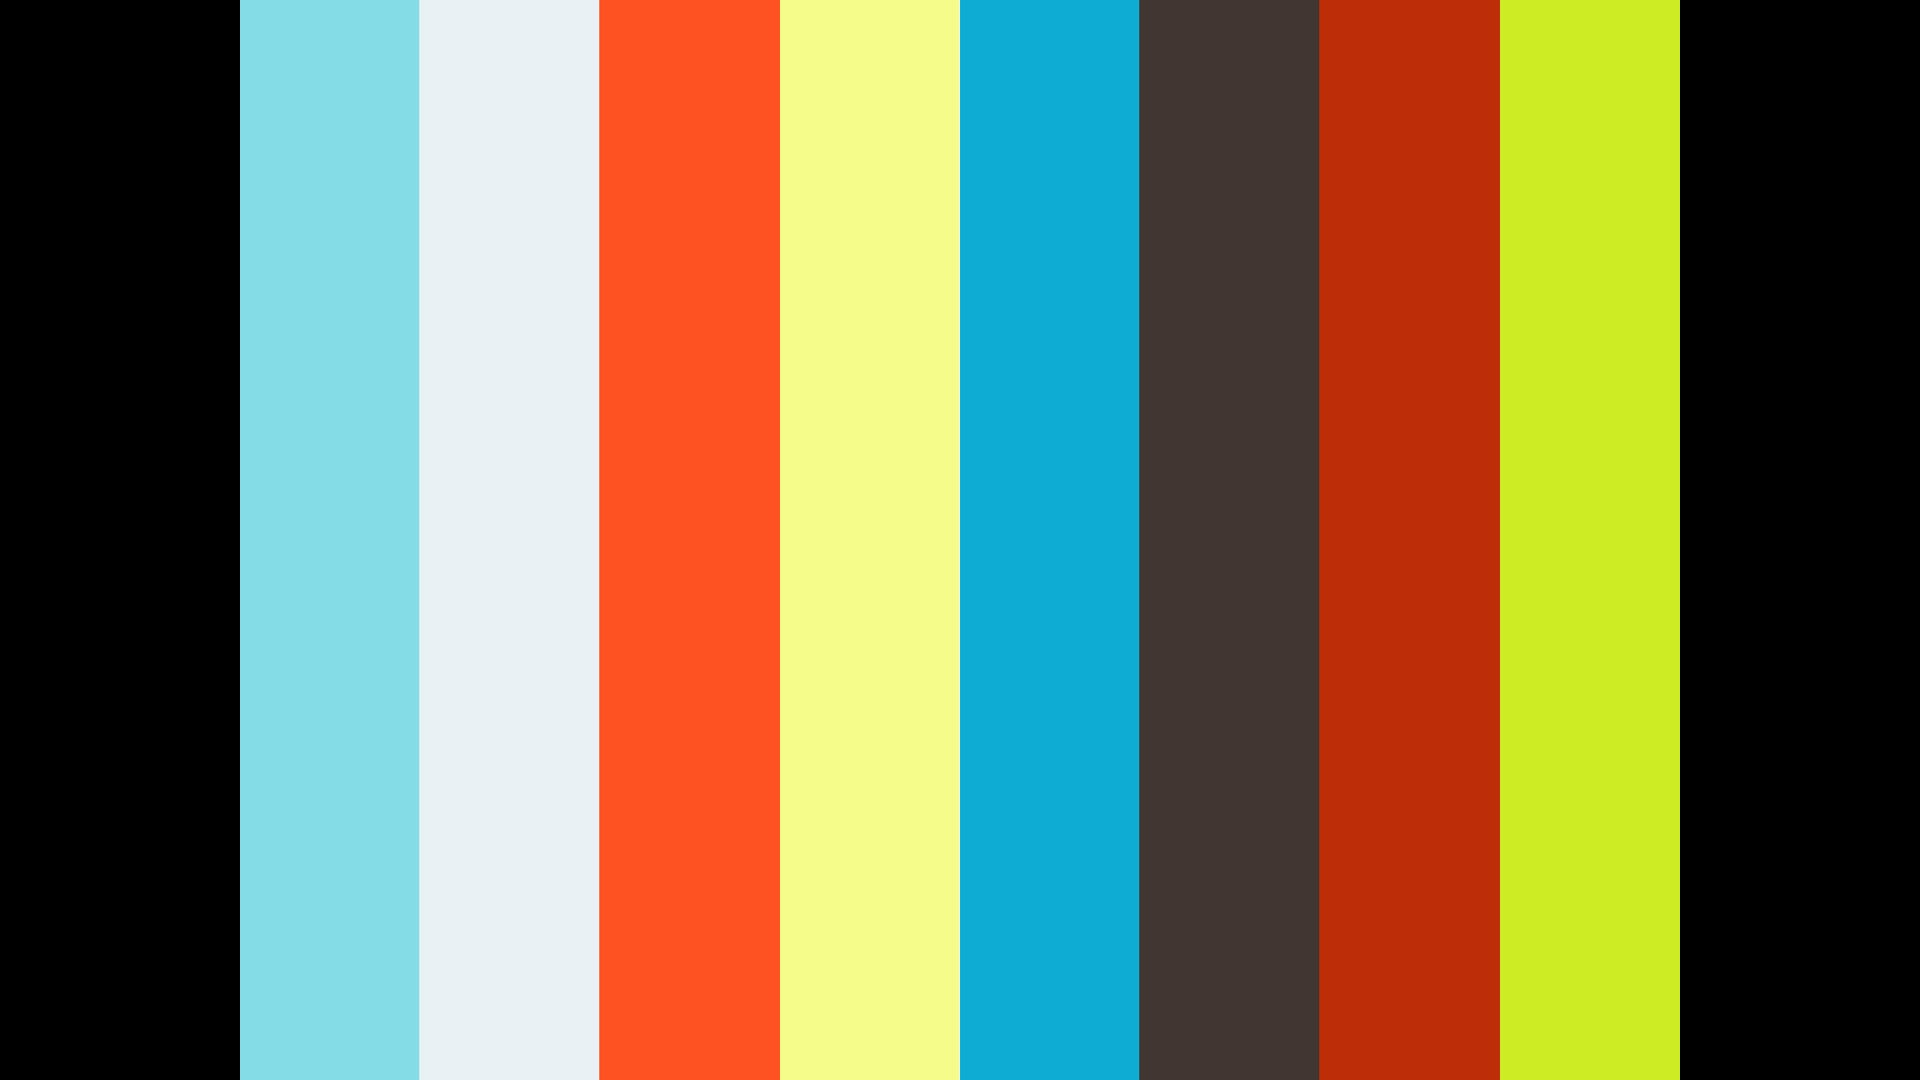 SekureCropSolutions 360